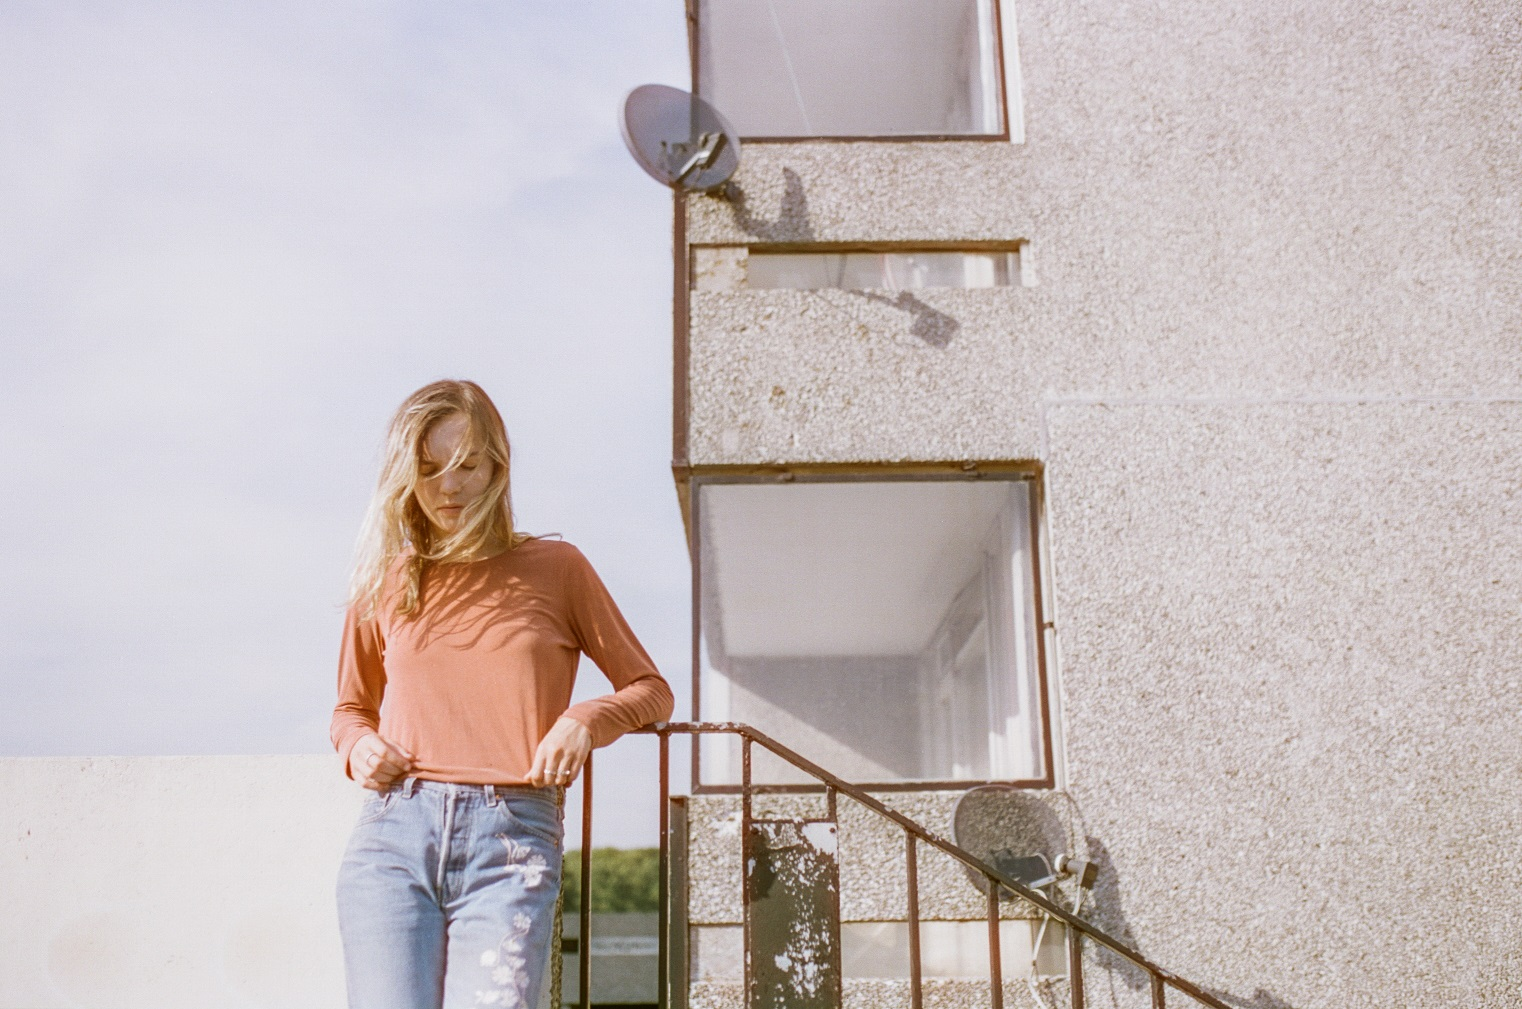 The Japanese House © Danny North